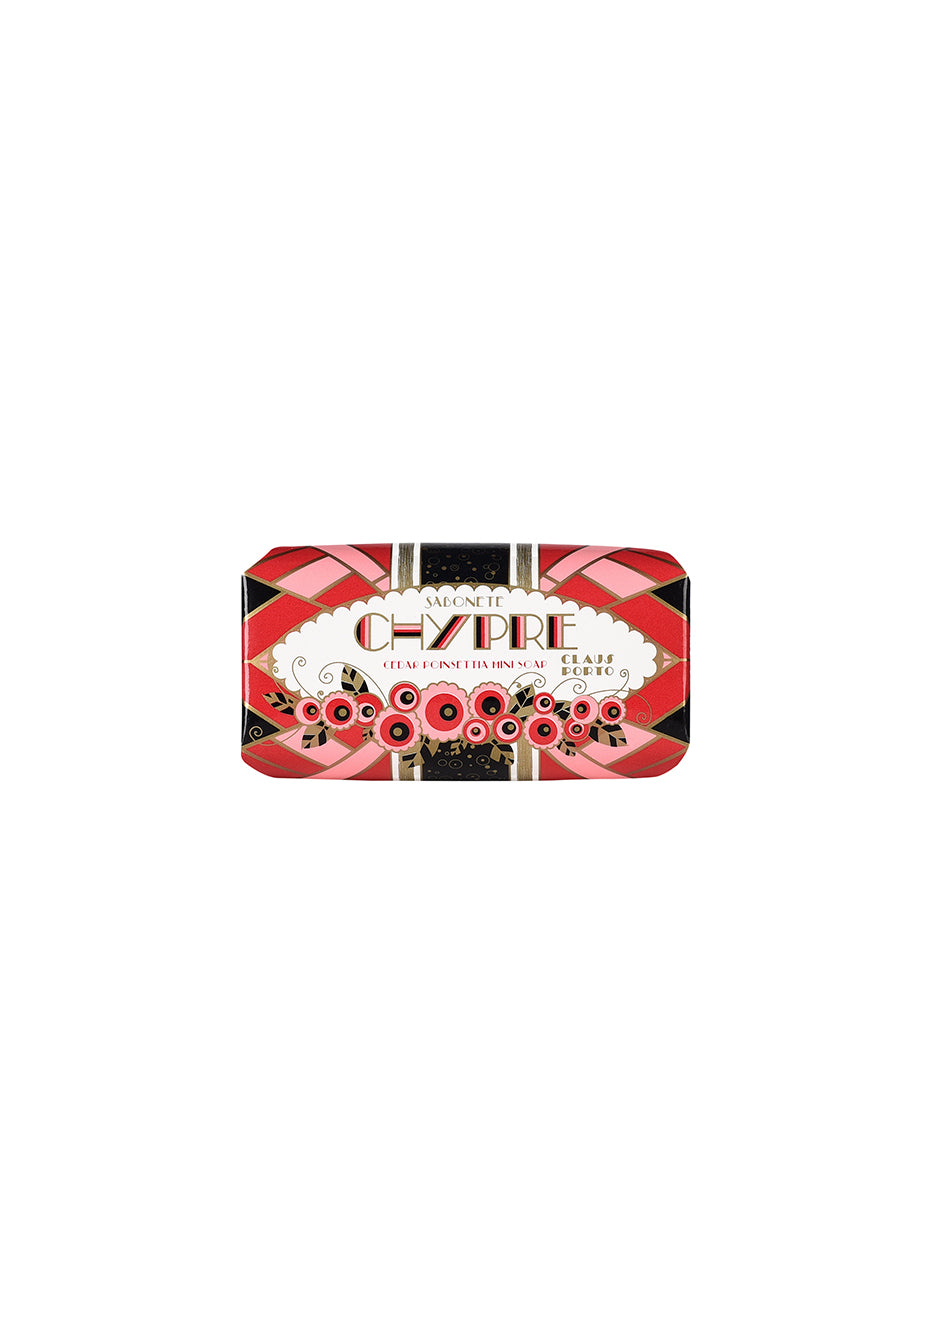 Chypre Cedar Poinsettia Mini Soap